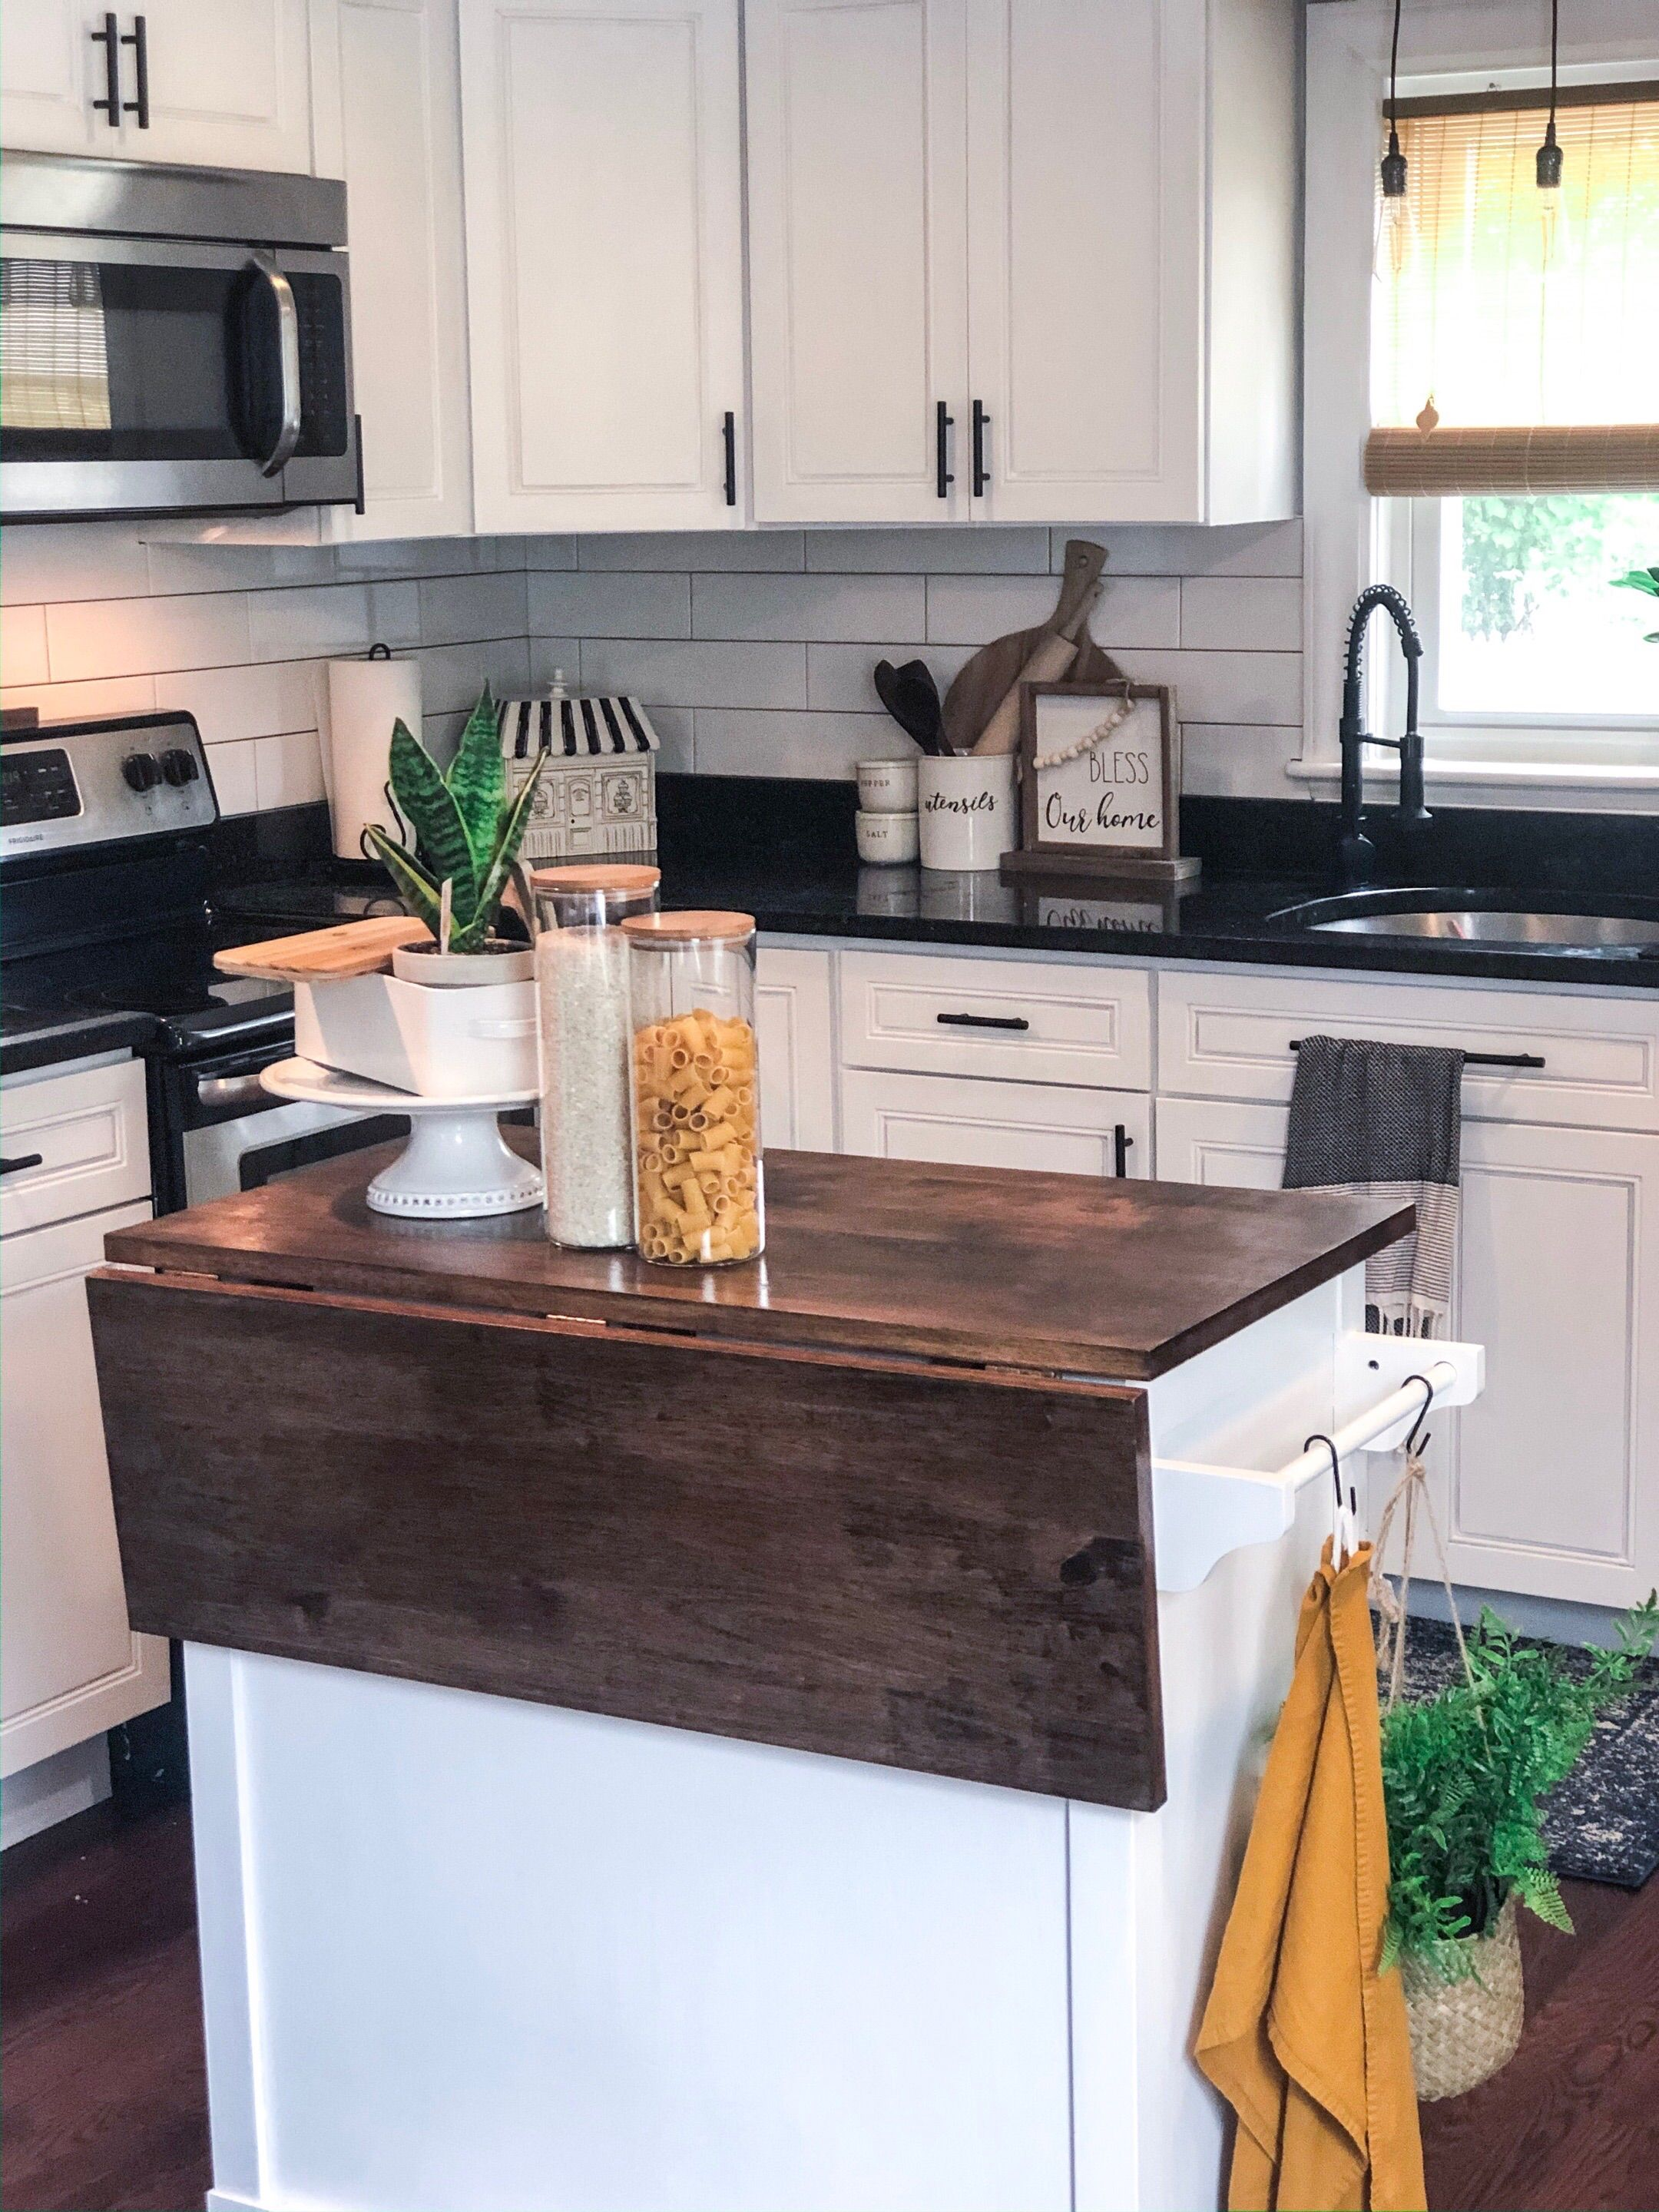 #diy #whitesubtile #casacallahan #Kitchenislanddecor #farmhousekitchen #glasscanisters #snakeplant #target #potterybarn #magnolia #ikea #westelm #amazon #diy #farmhouse #kitchendiy #kitchen #kitchenisland #whitekitchen